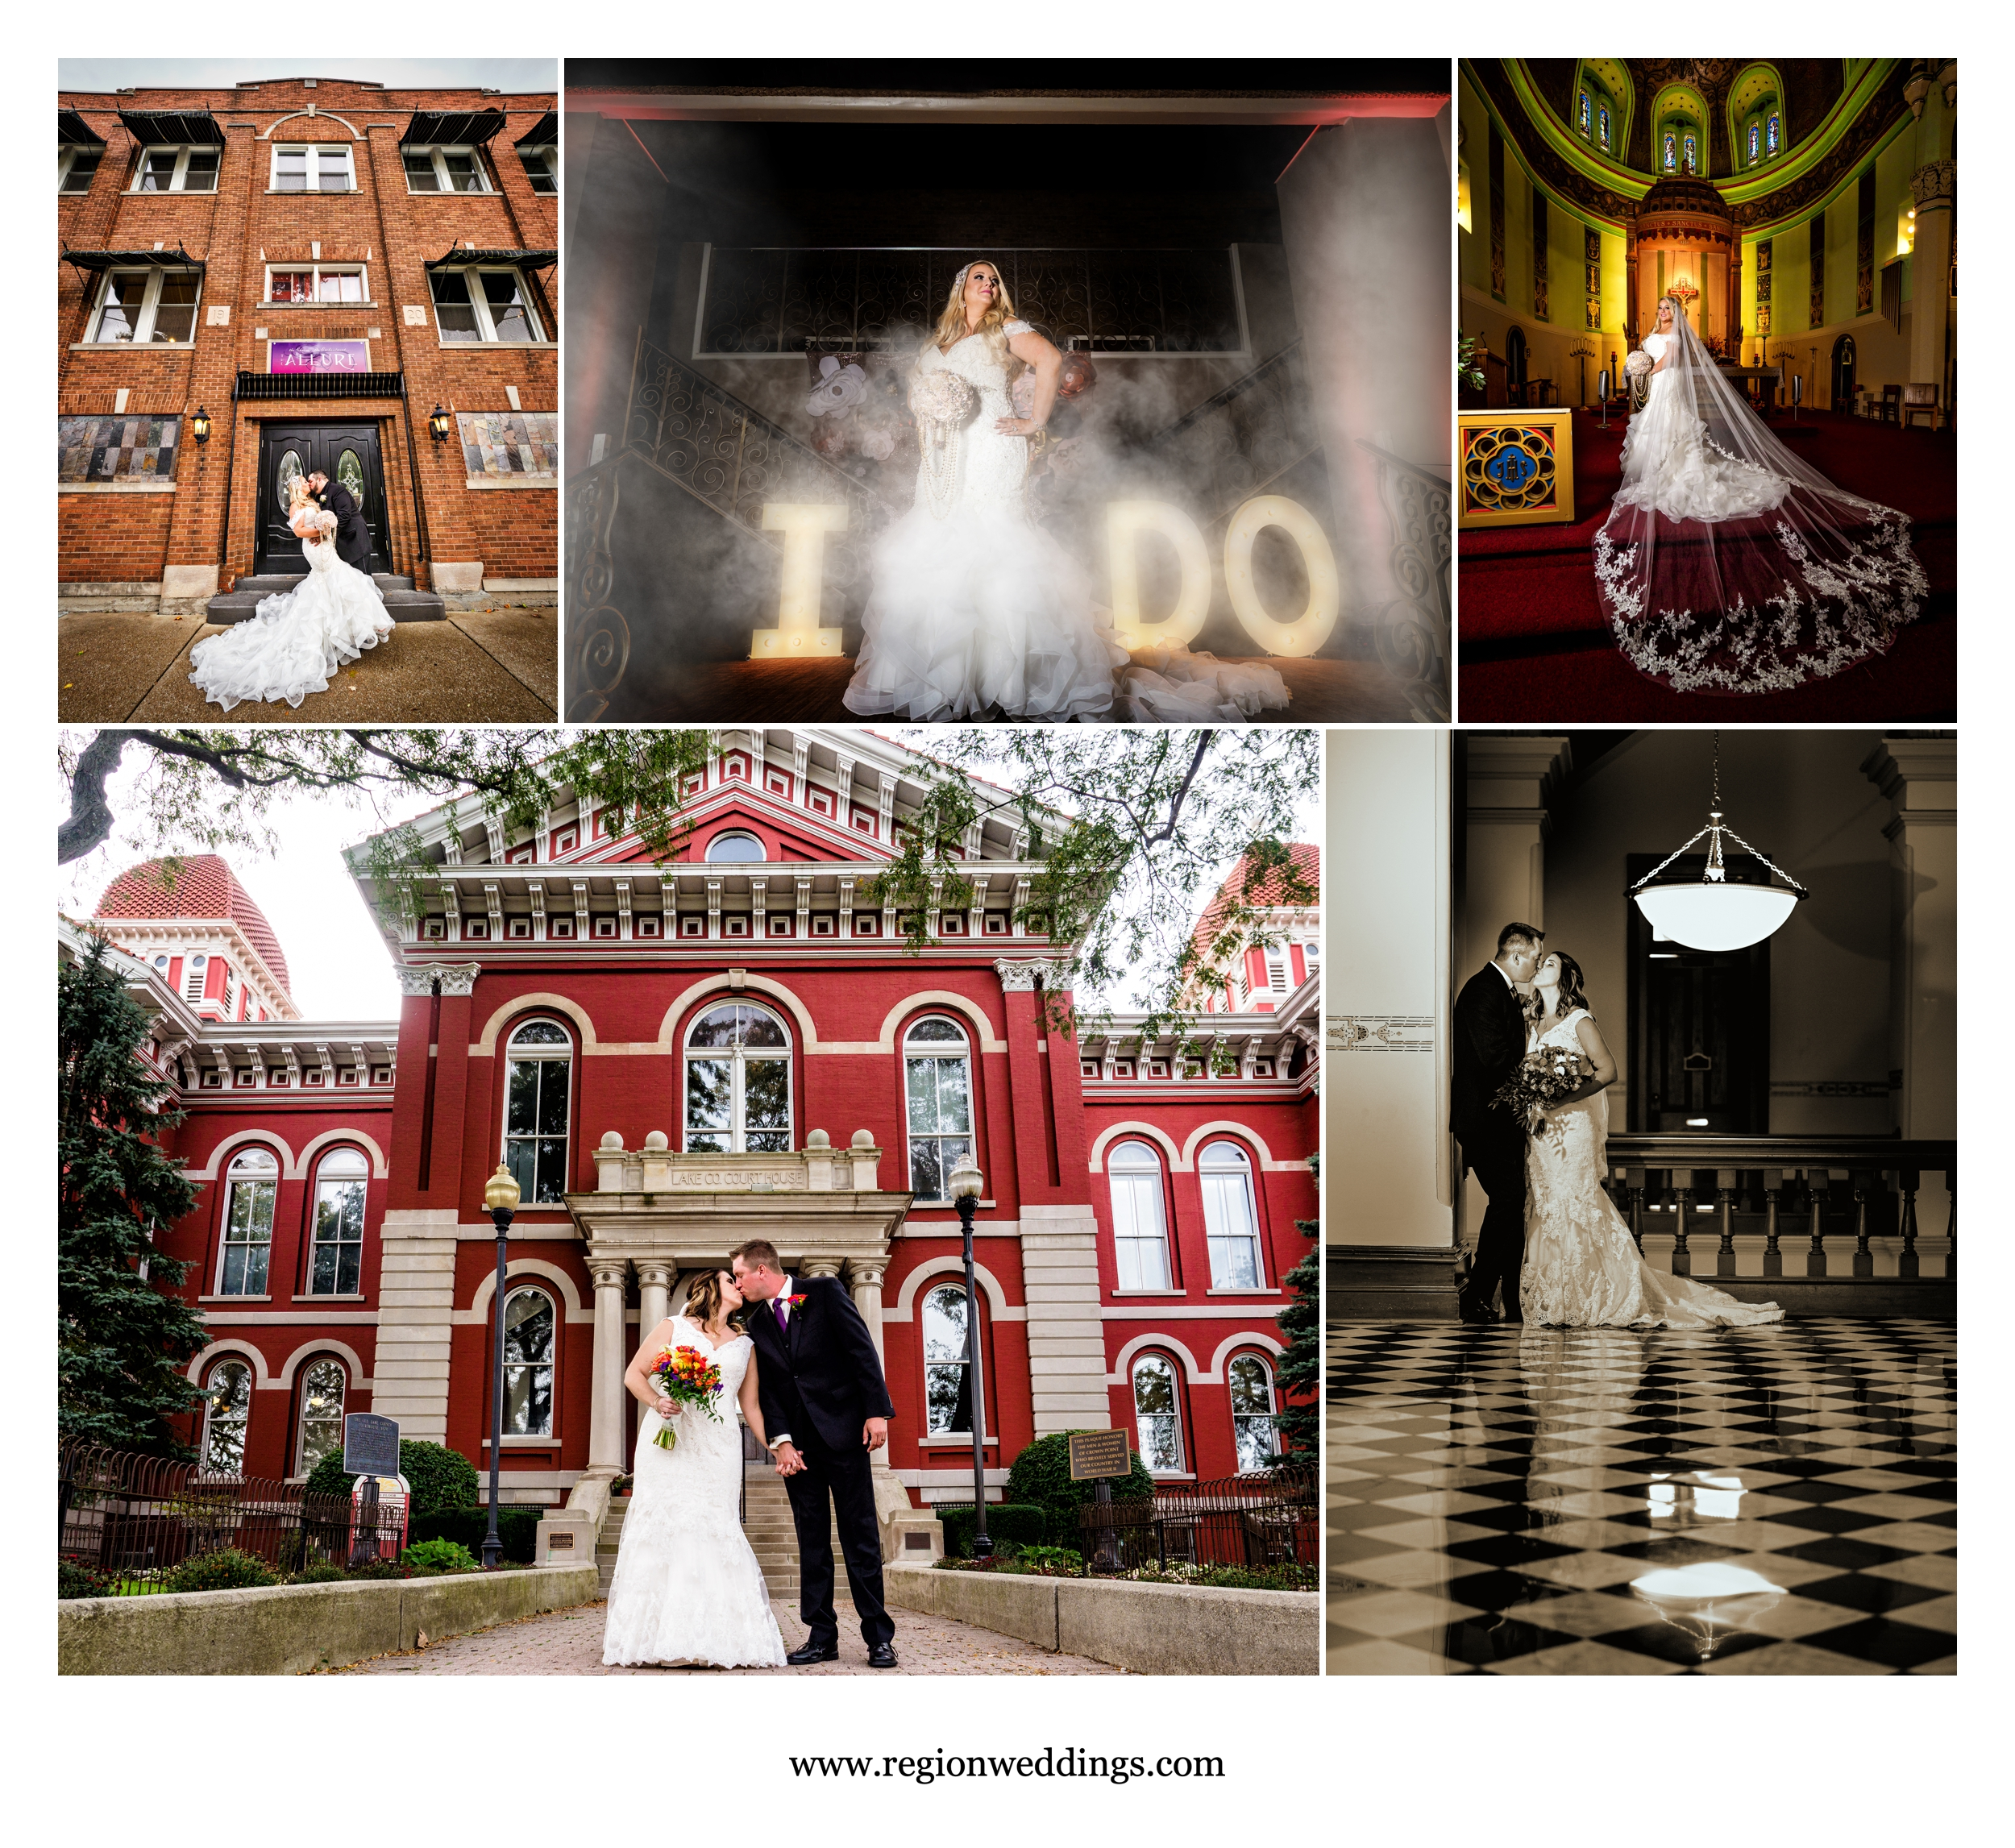 More October weddings at The Allure and in downtown Crown Point.